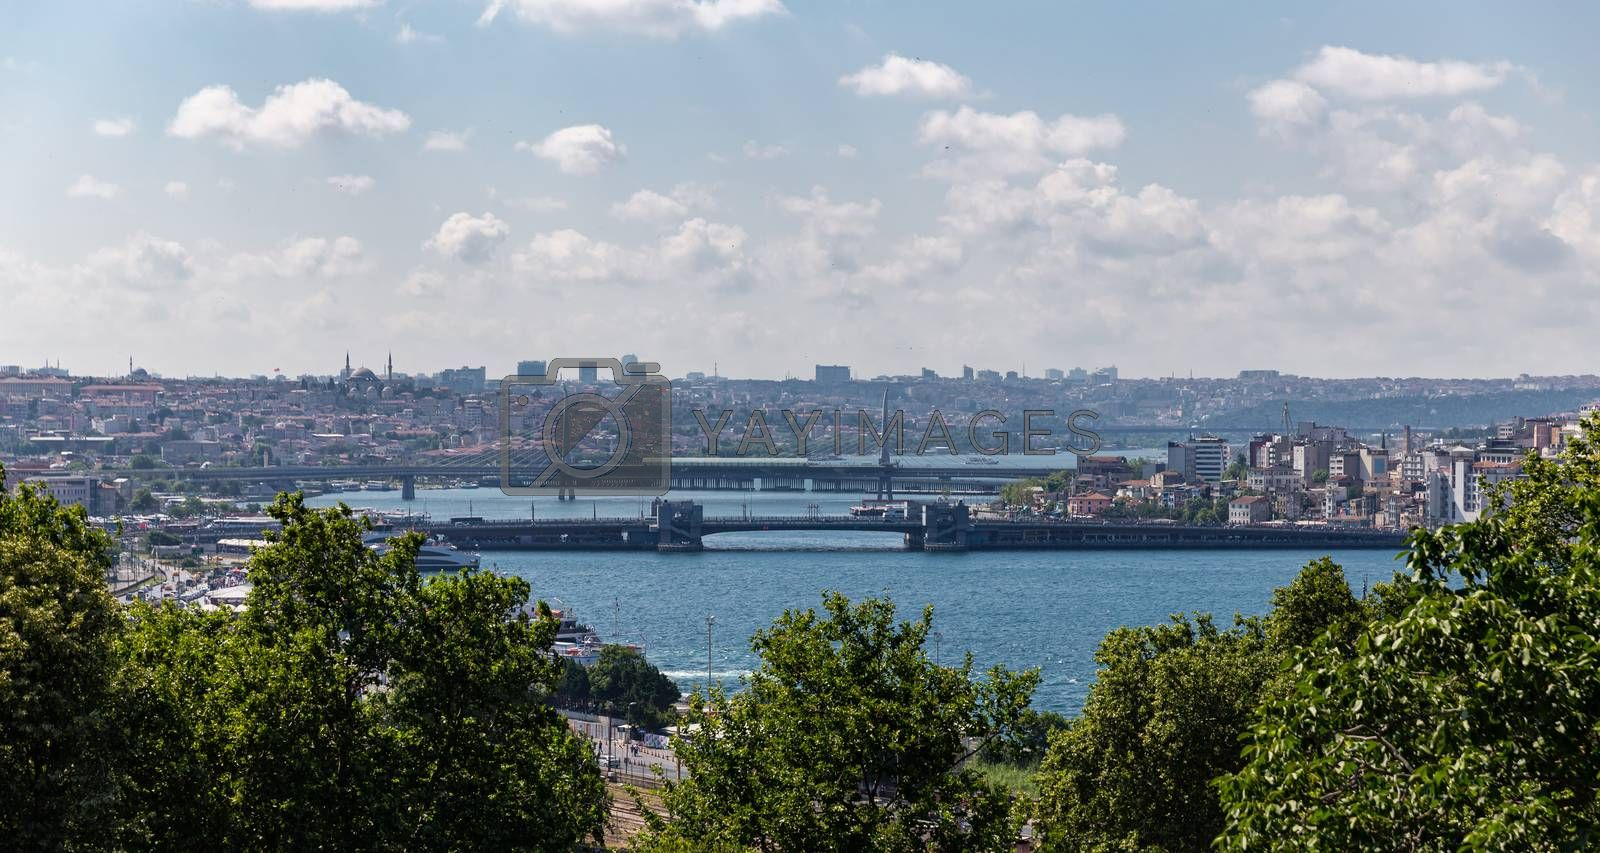 Golden Horn and Fatih District in Istanbul City, Turkey